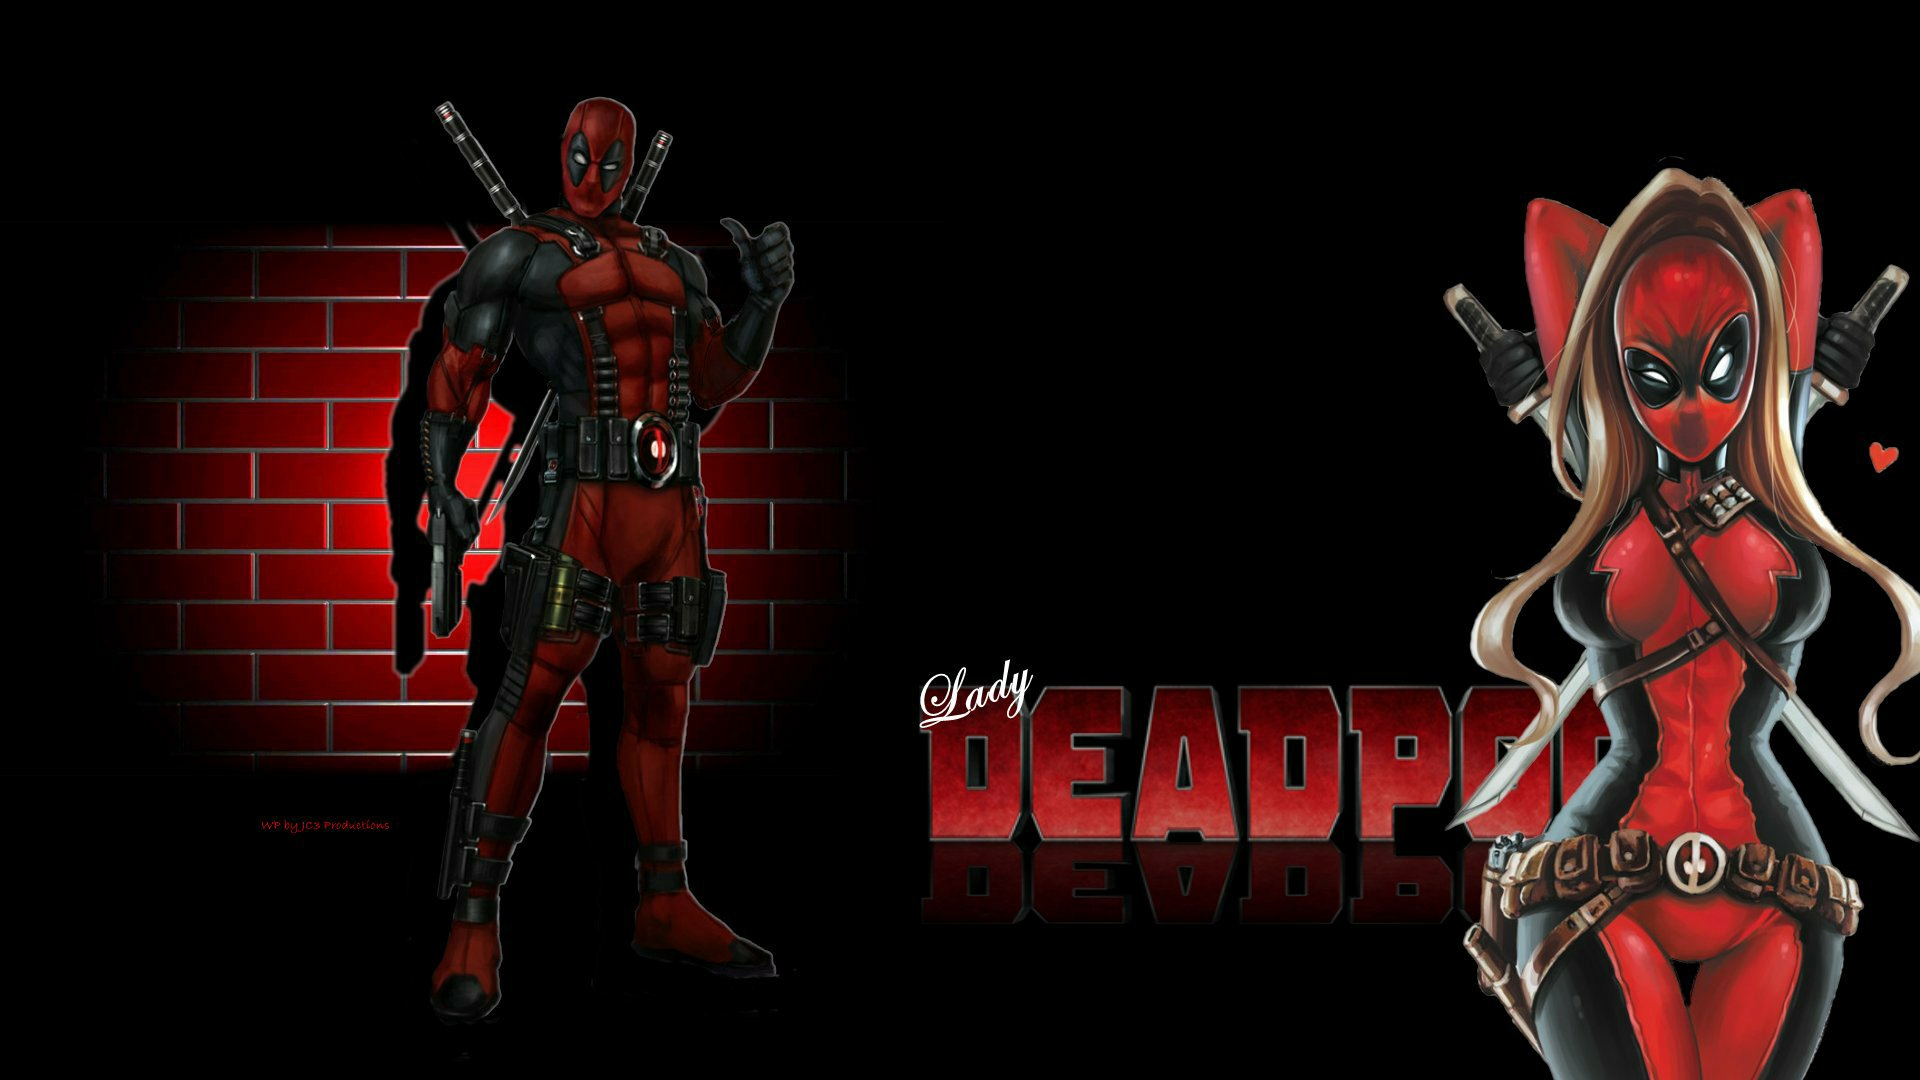 Lady Deadpool Wallpaper Brick Wall 2